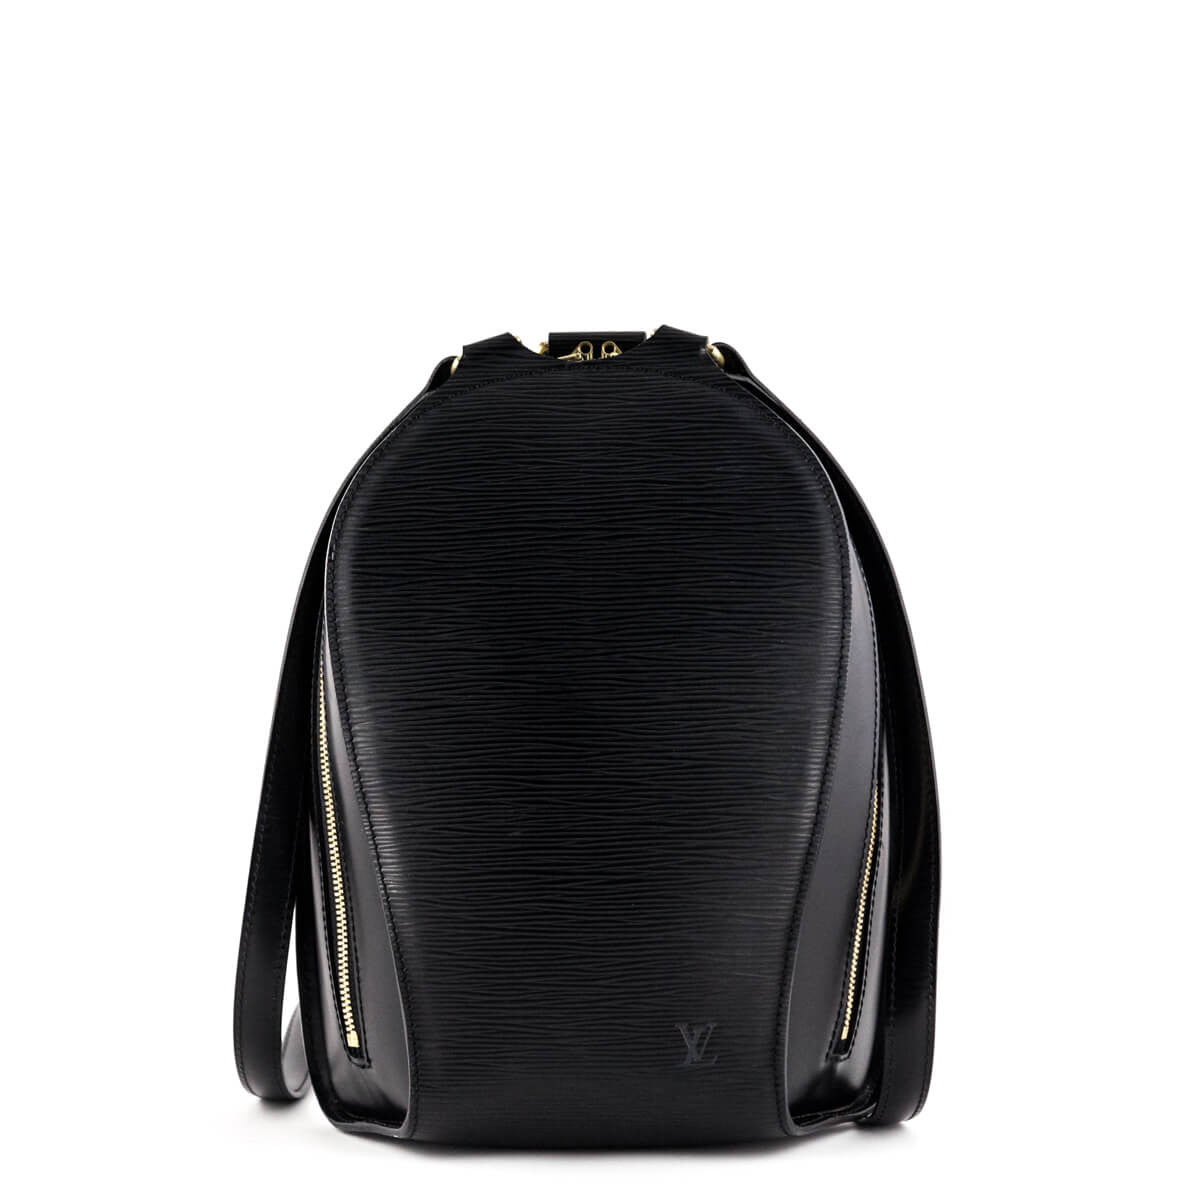 401f73cf4d7 https://www.lovethatbag.ca/ daily https://www.lovethatbag.ca/products ...